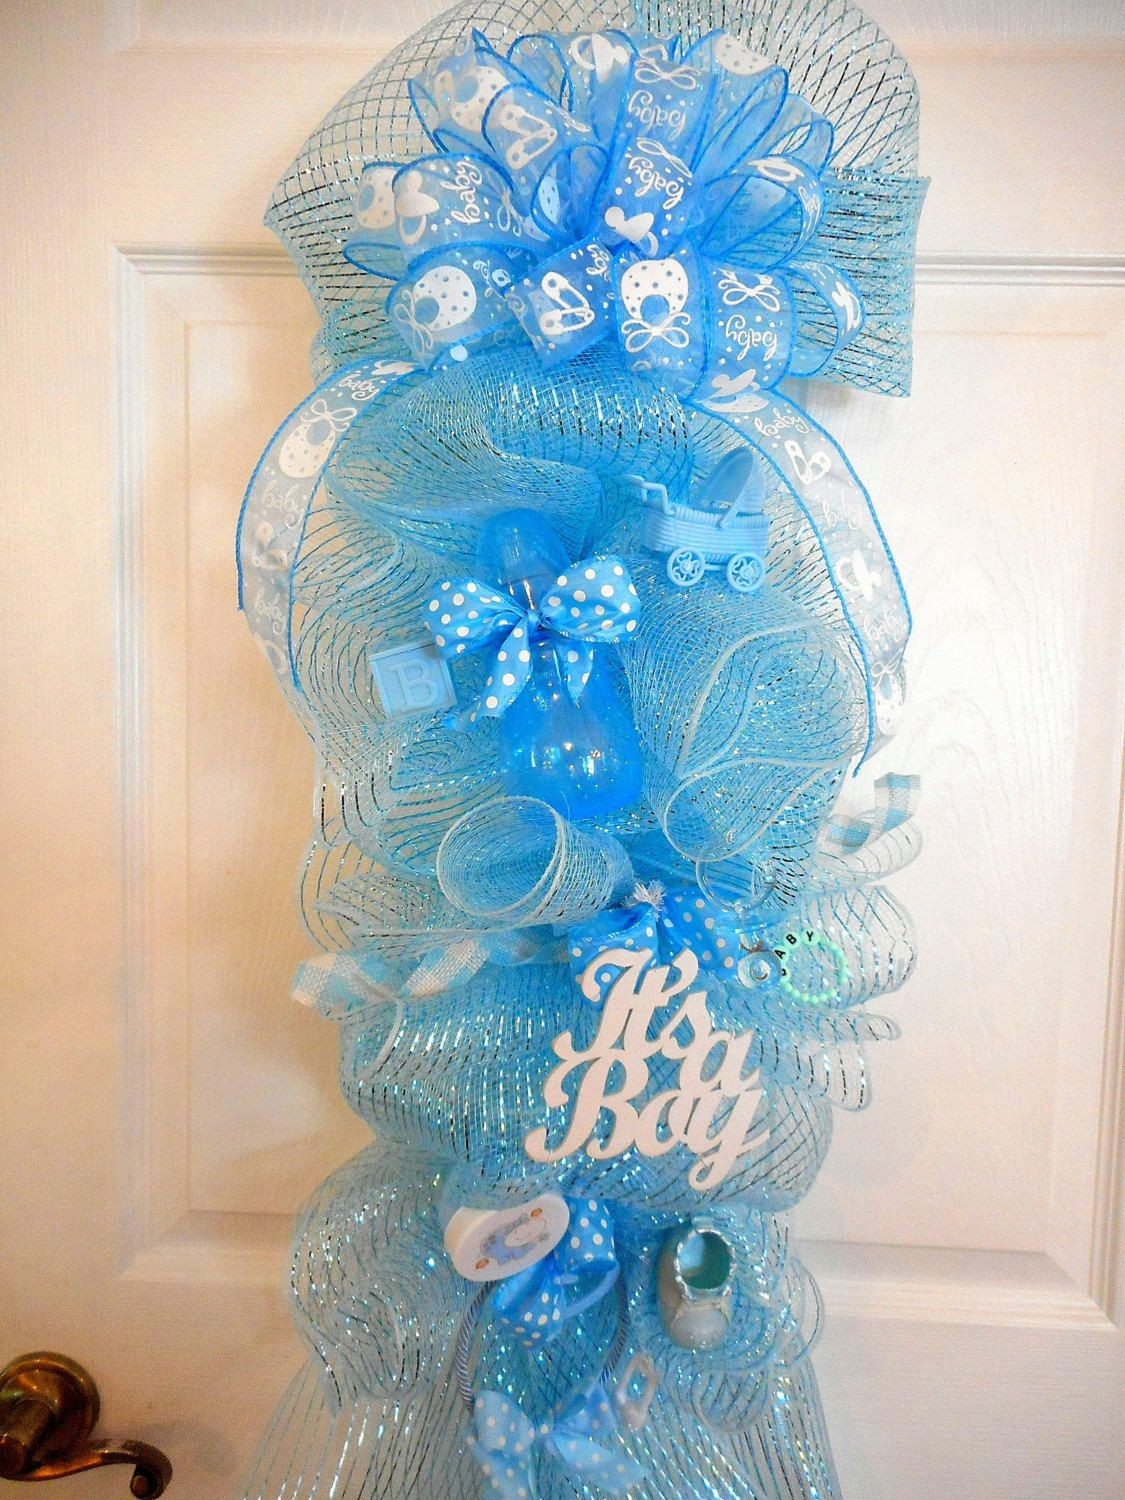 Baby Boy Deco Mesh Wreaths It S A Boy Welcome Home Swag Baby